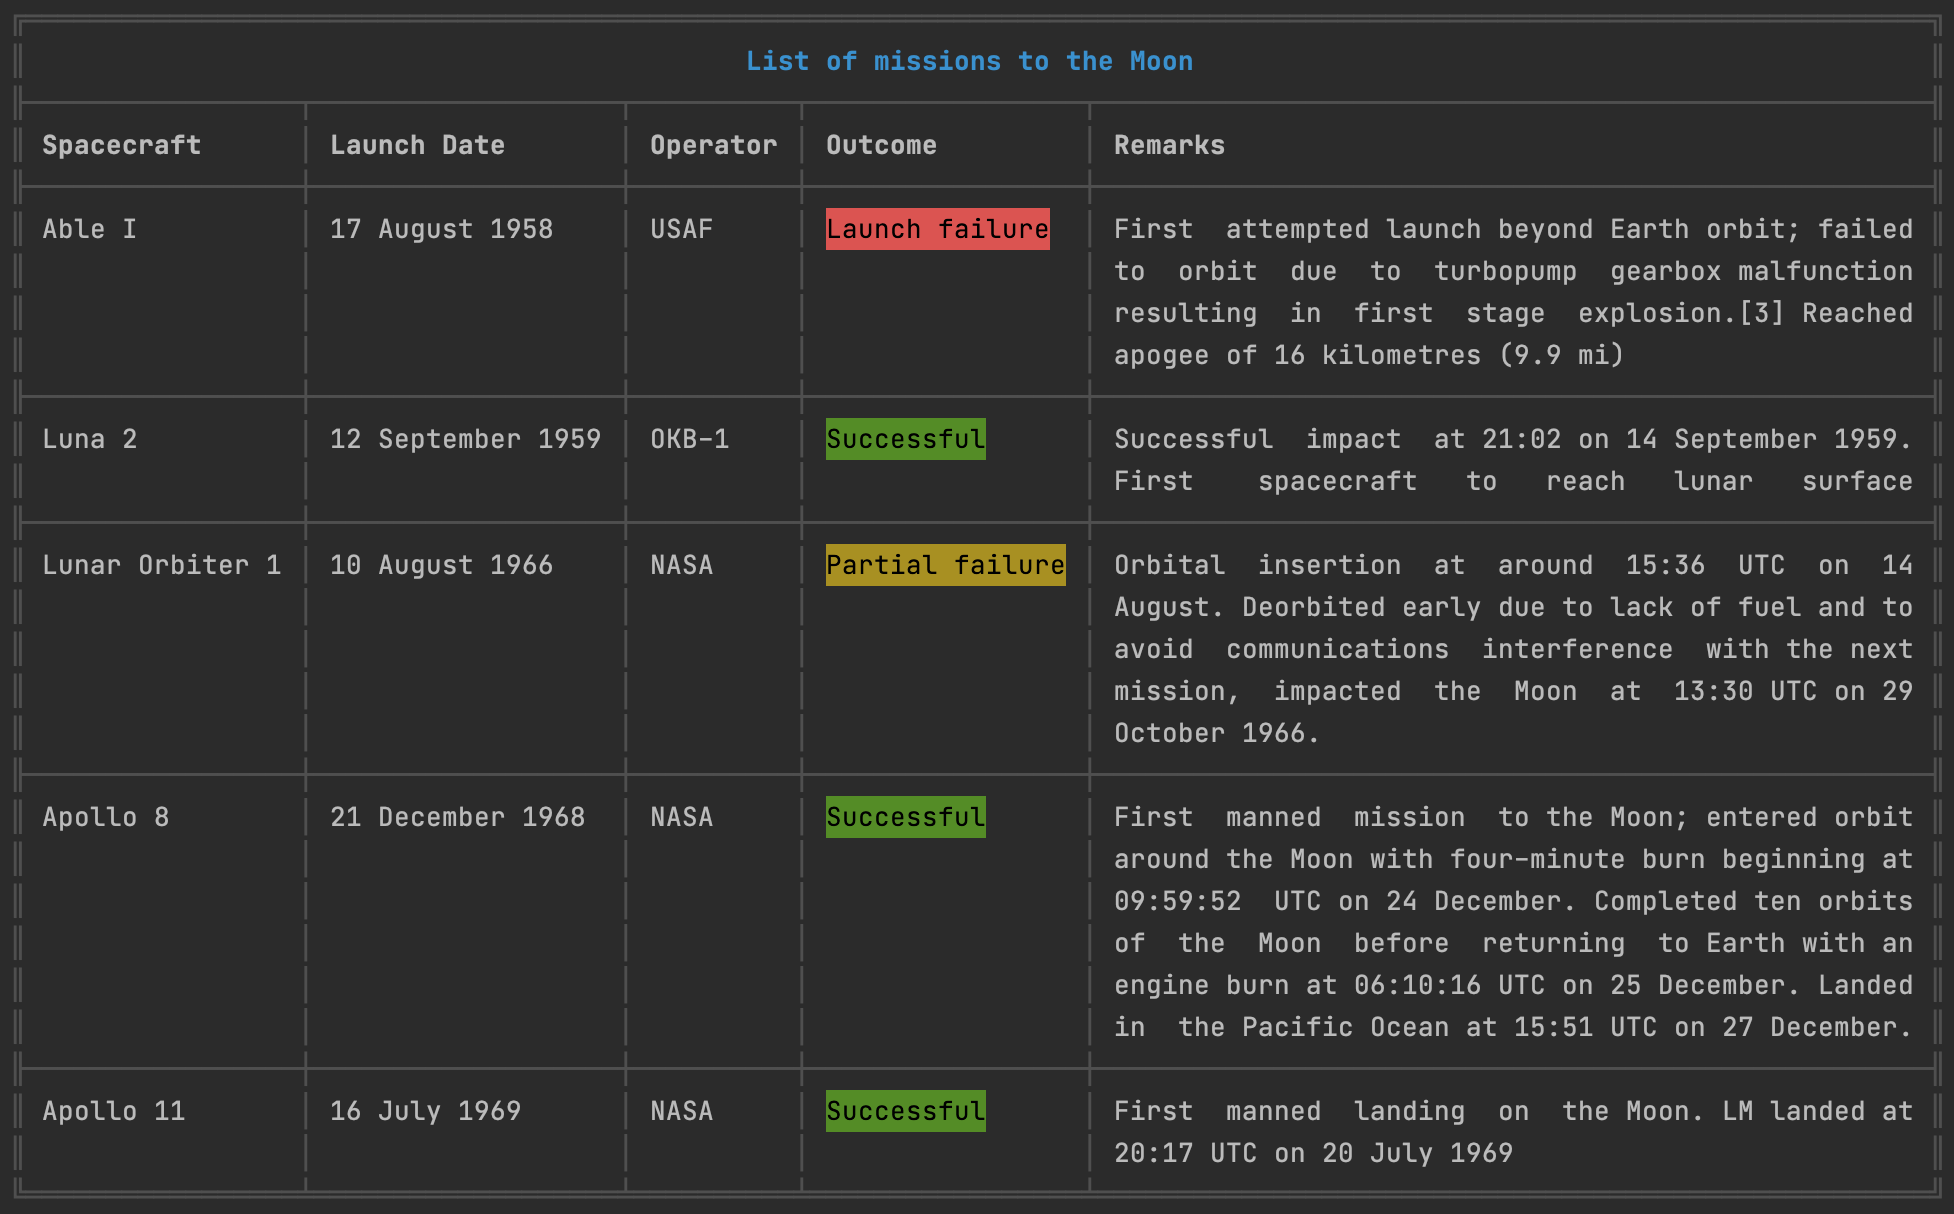 Demo of table displaying a list of missions to the Moon.